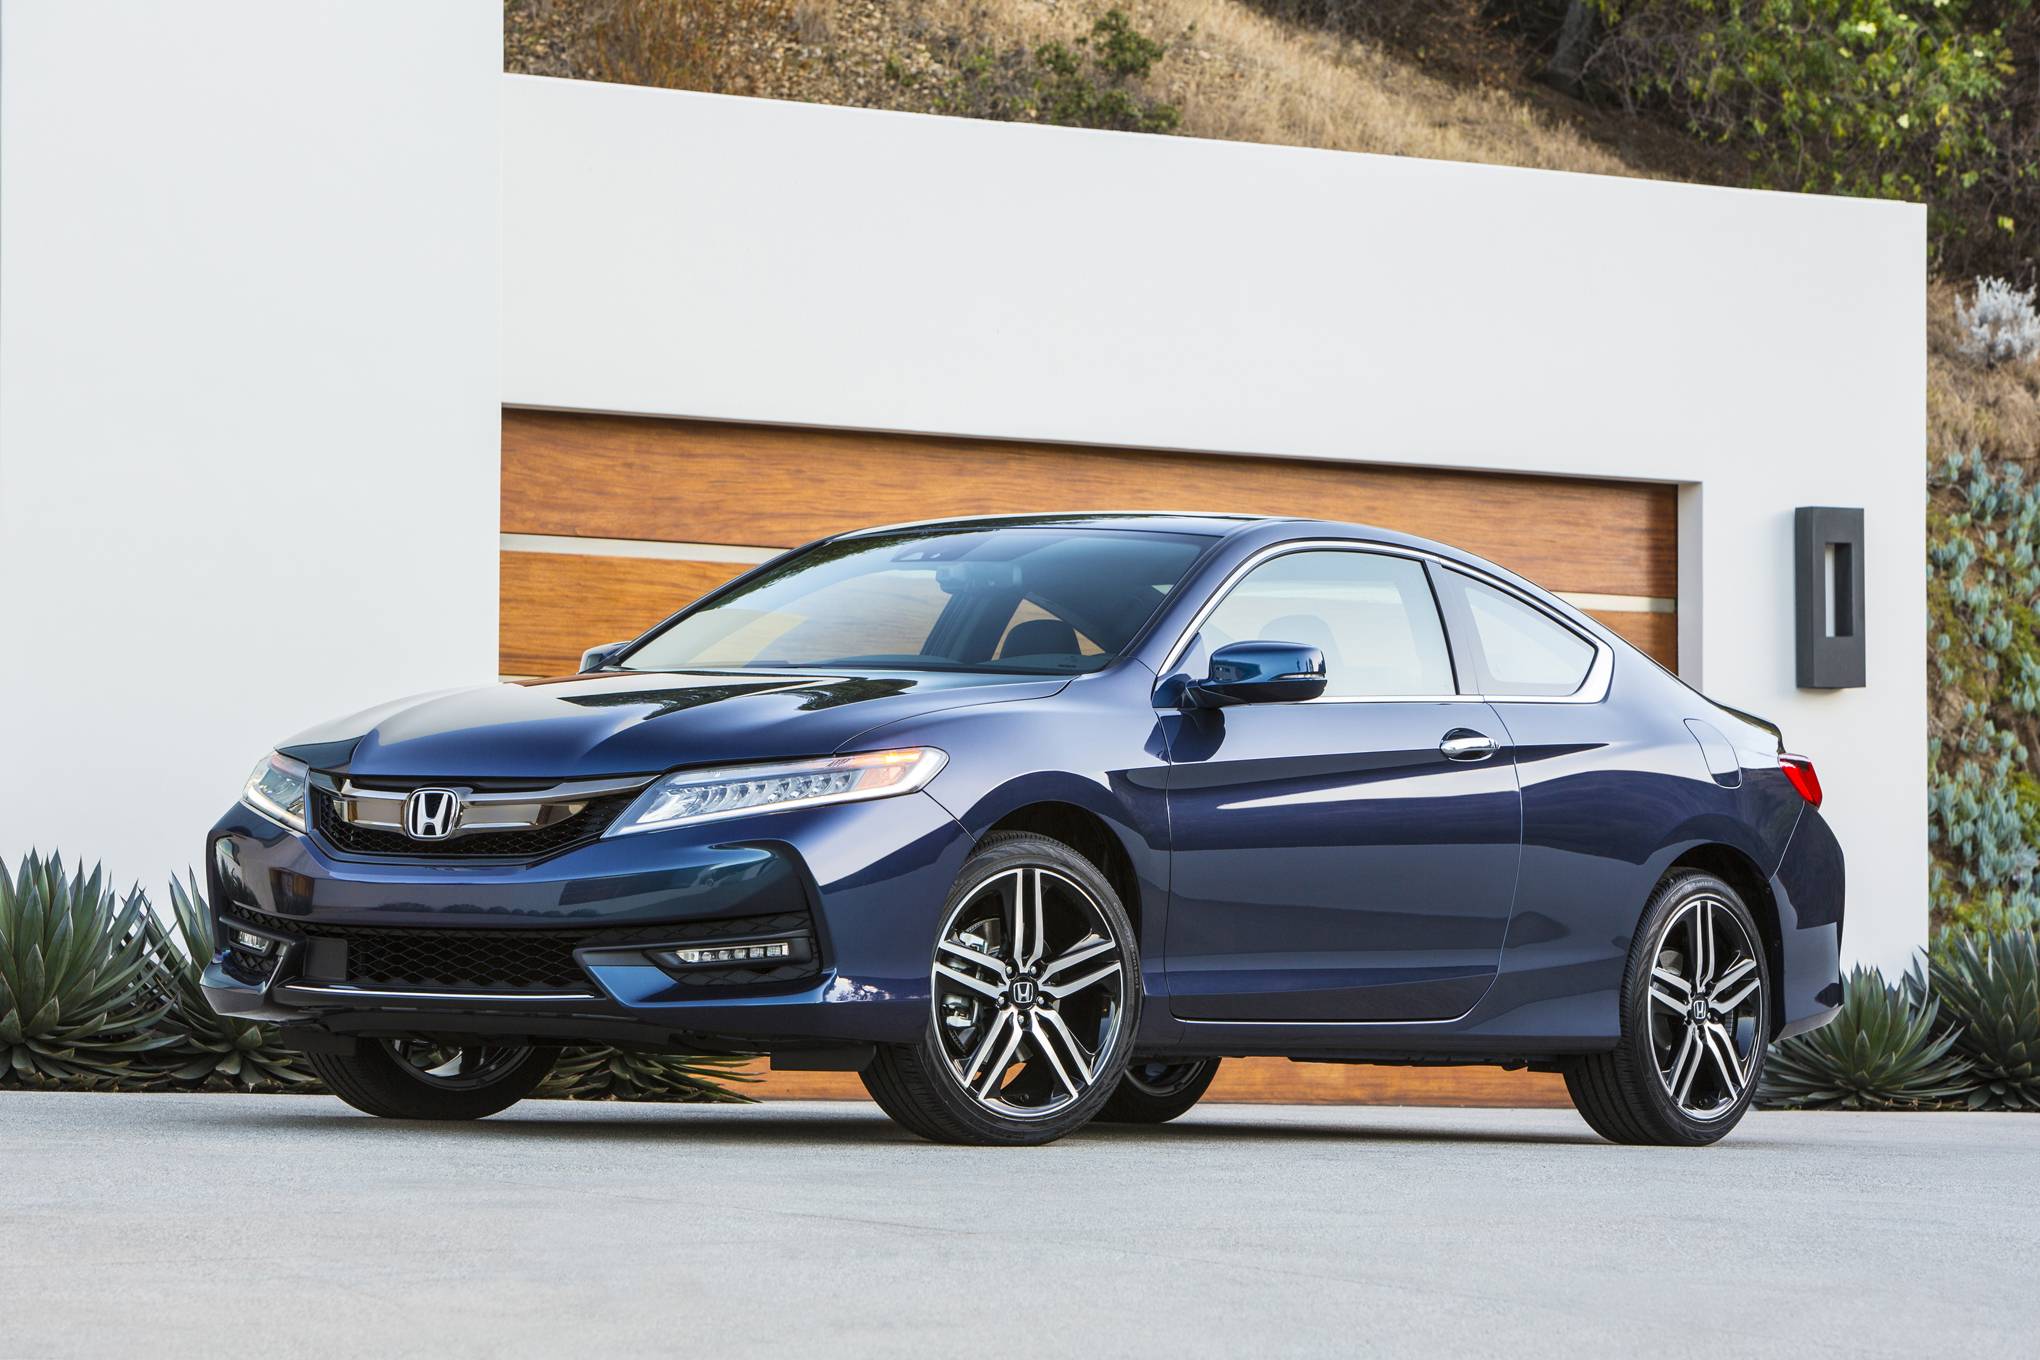 Accord Coupe Vs. Mustang: 5 Reasons To Go Honda And 5 More To Get The Ford